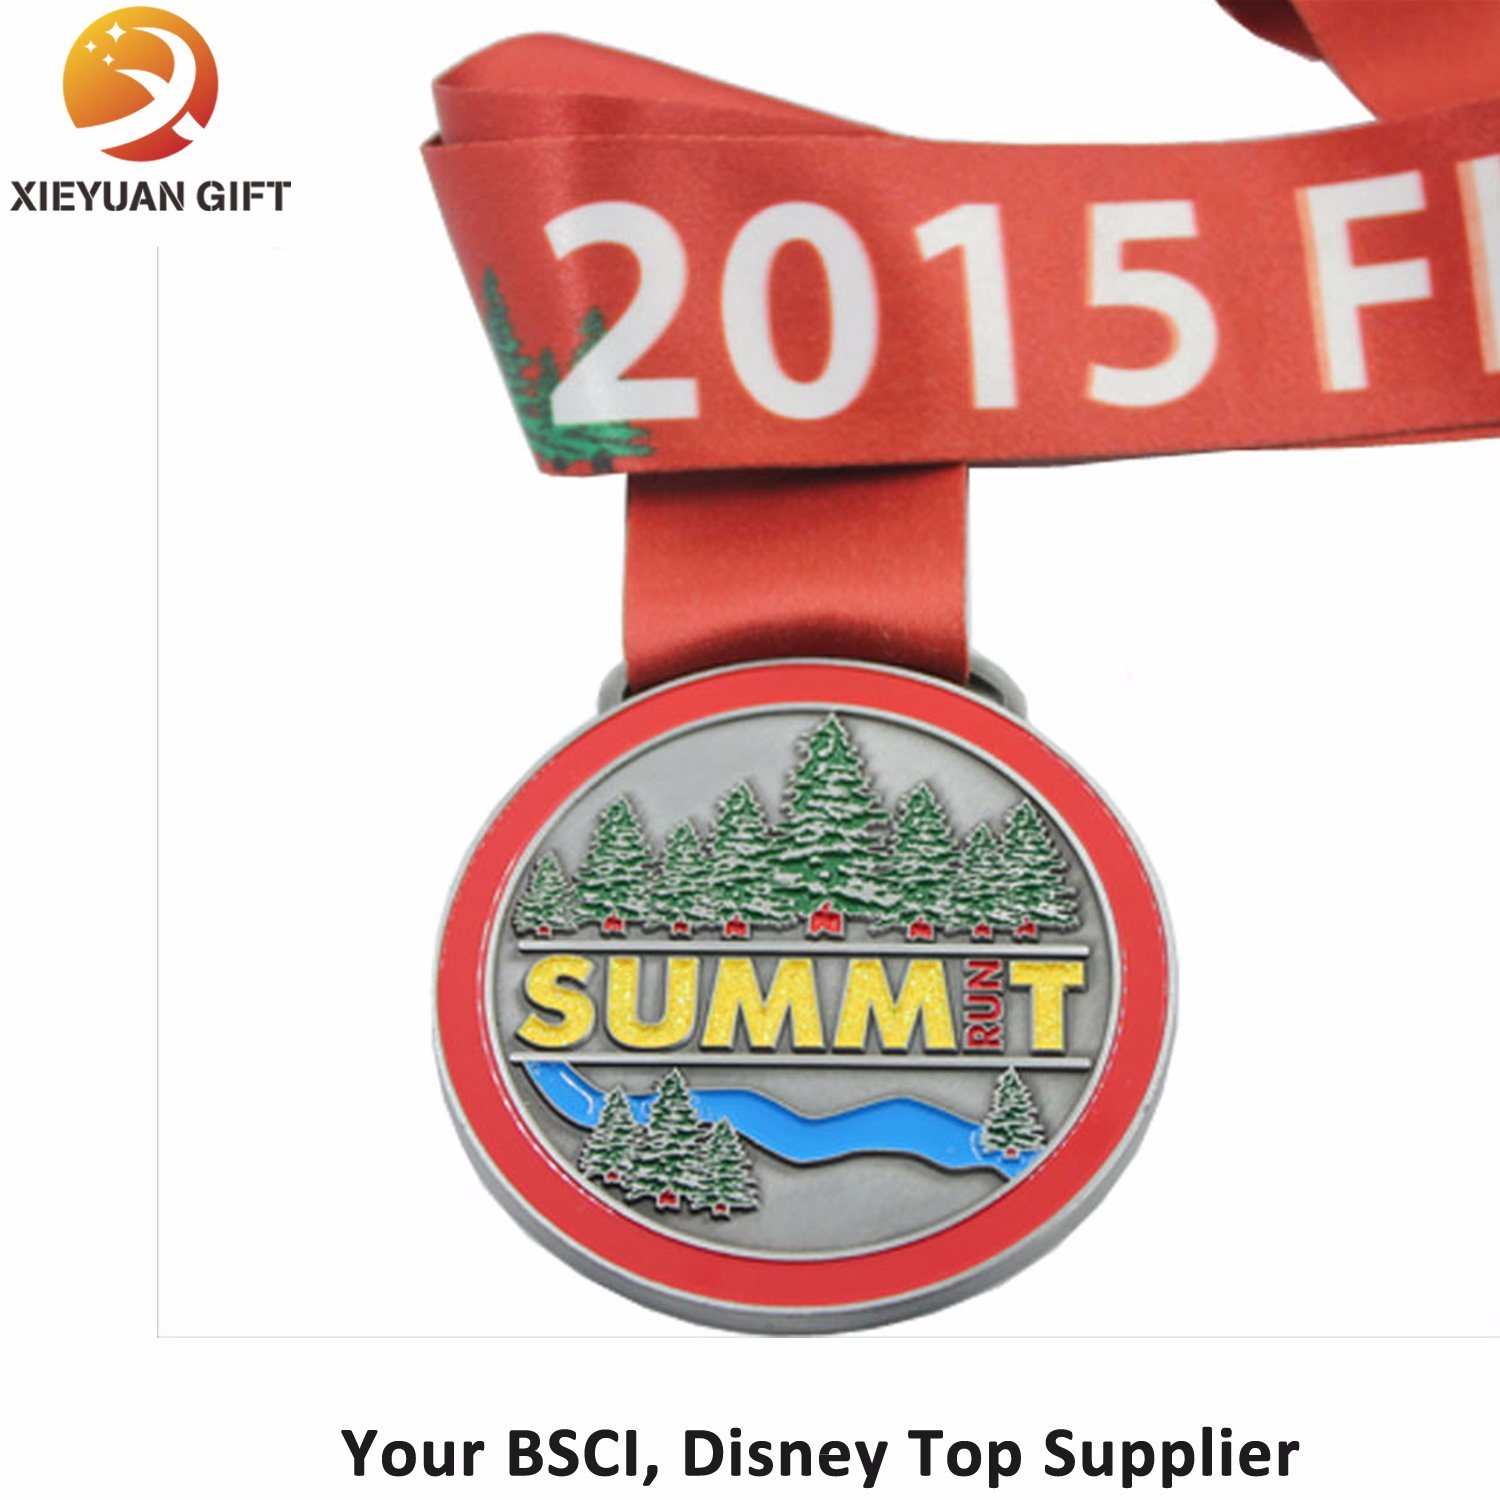 2015 Summt Custom Antique Soft Enamel Medal with Ribbon